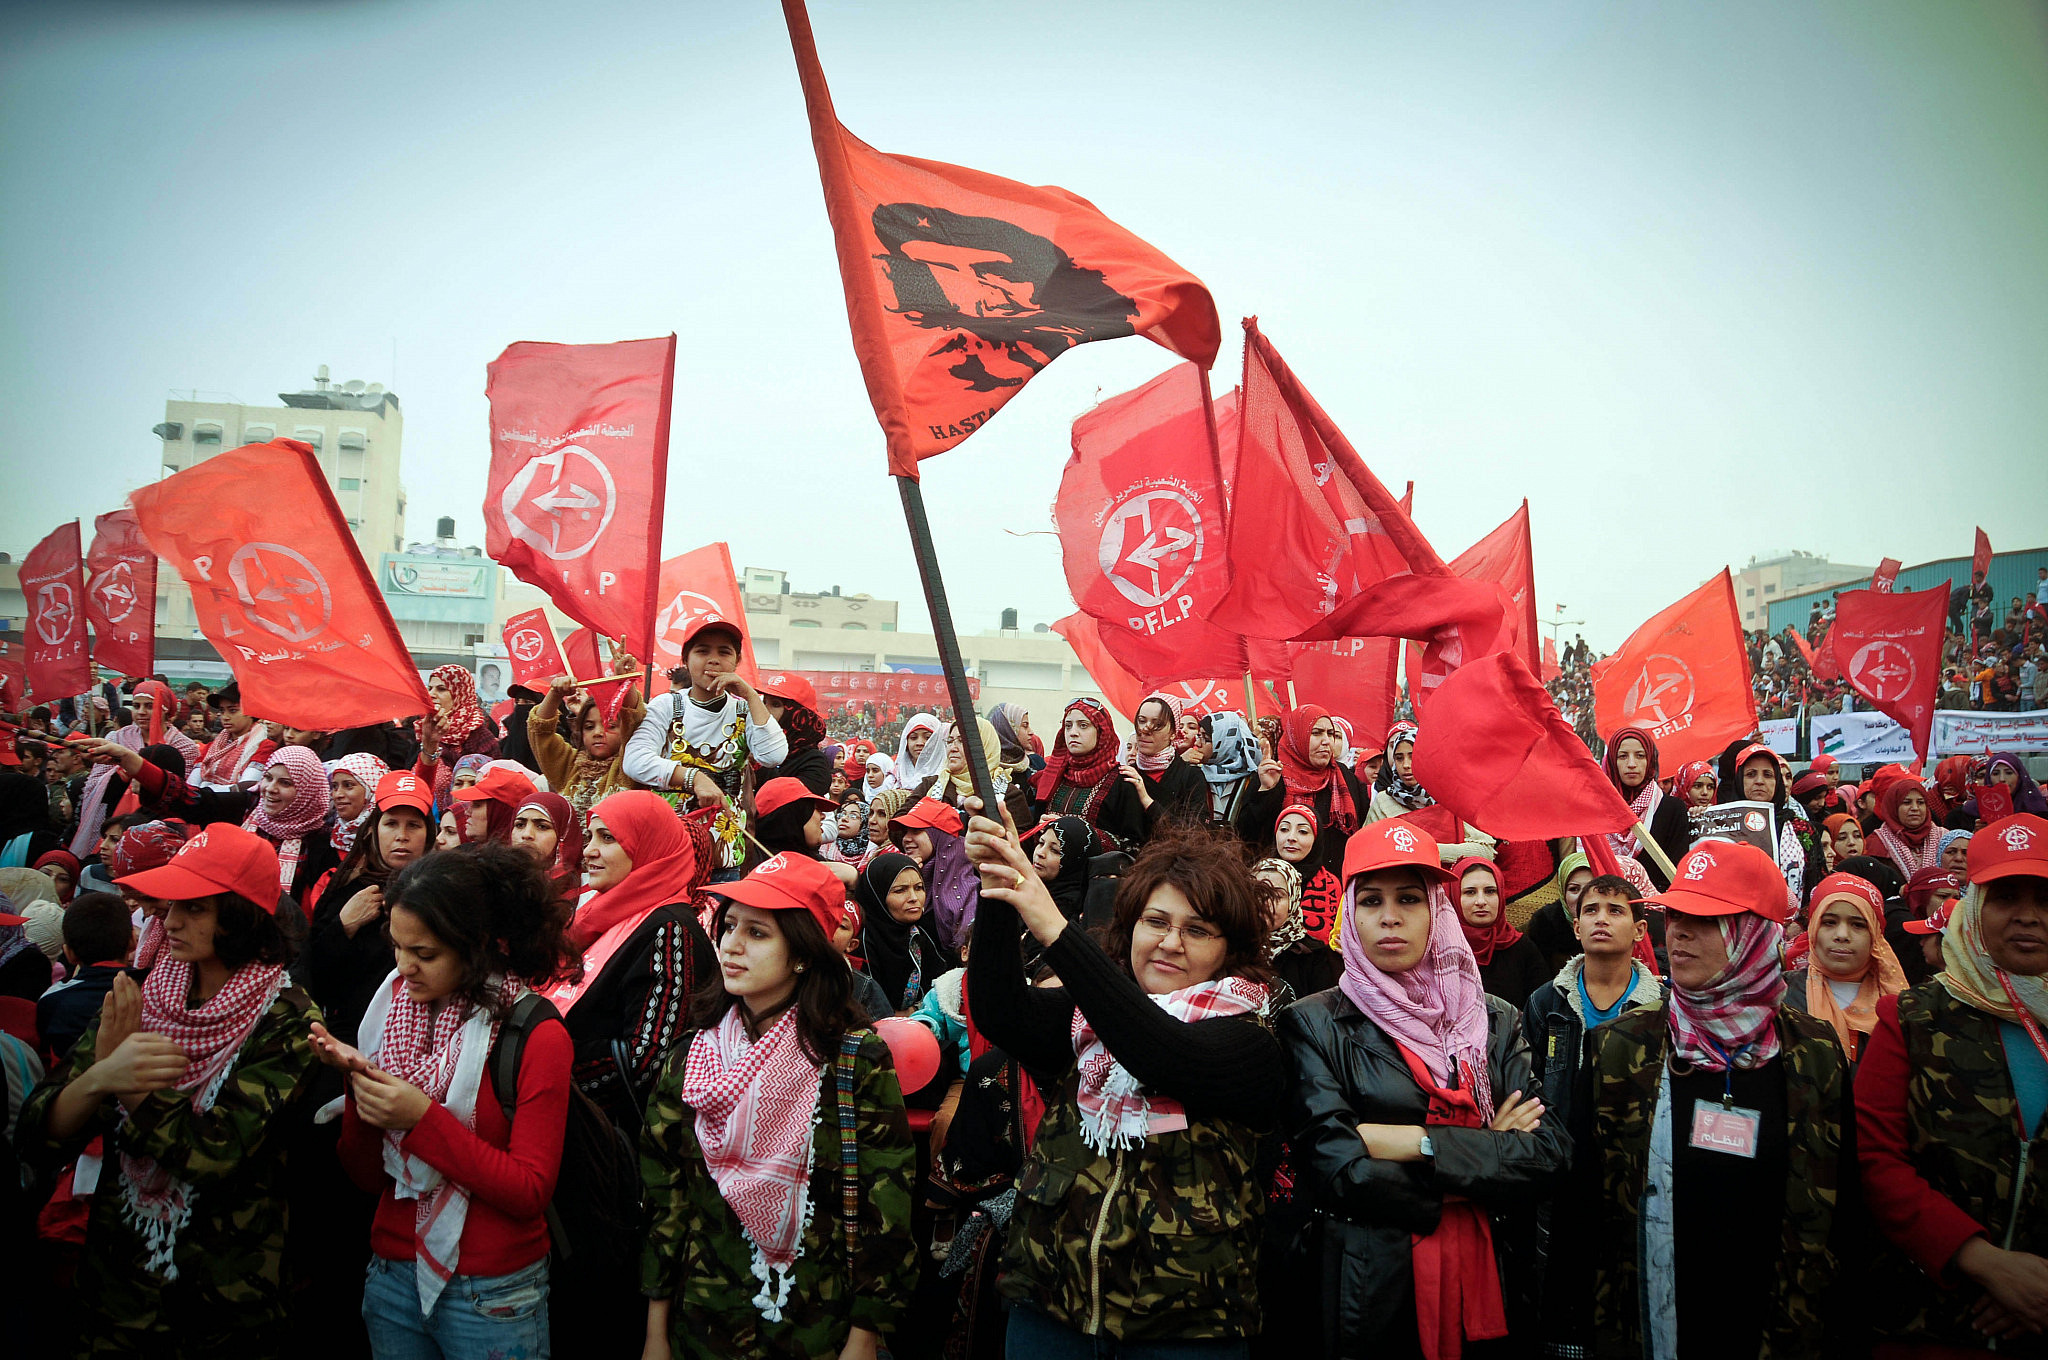 Palestinian women sing while waving red flags at a rally marking the 43rd anniversary of the leftist Popular Front for the Liberation of Palestine (PFLP), in Gaza City, Dec. 11, 2010. (Mustafa Hassona/Flash90)